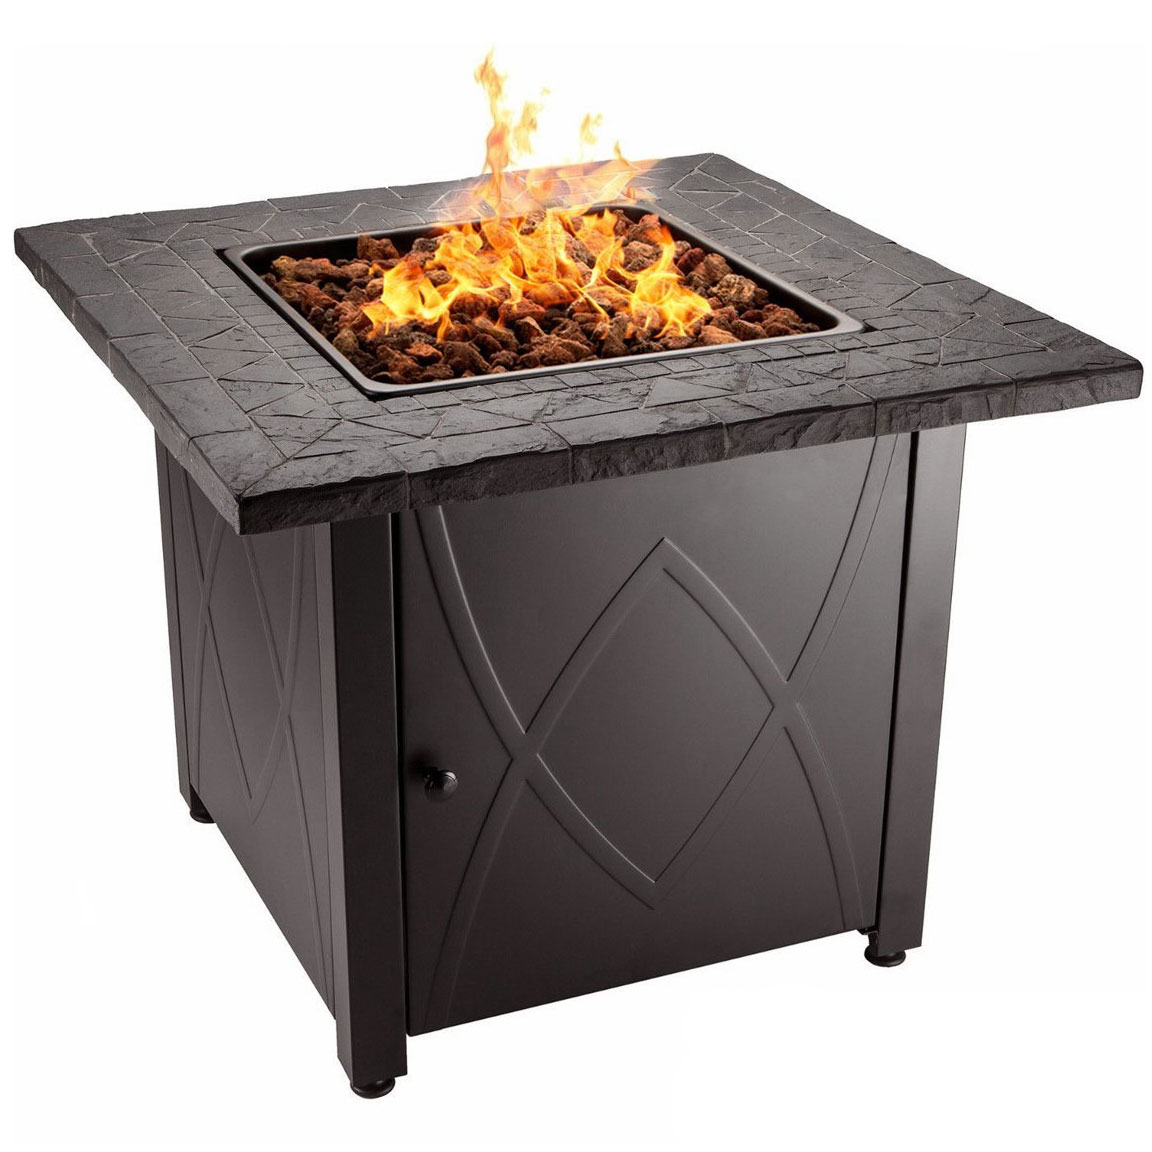 Blue Rhino Endless Summer Outdoor Propane Gas Lava Rock Patio Fireplace Firepit by Firepits